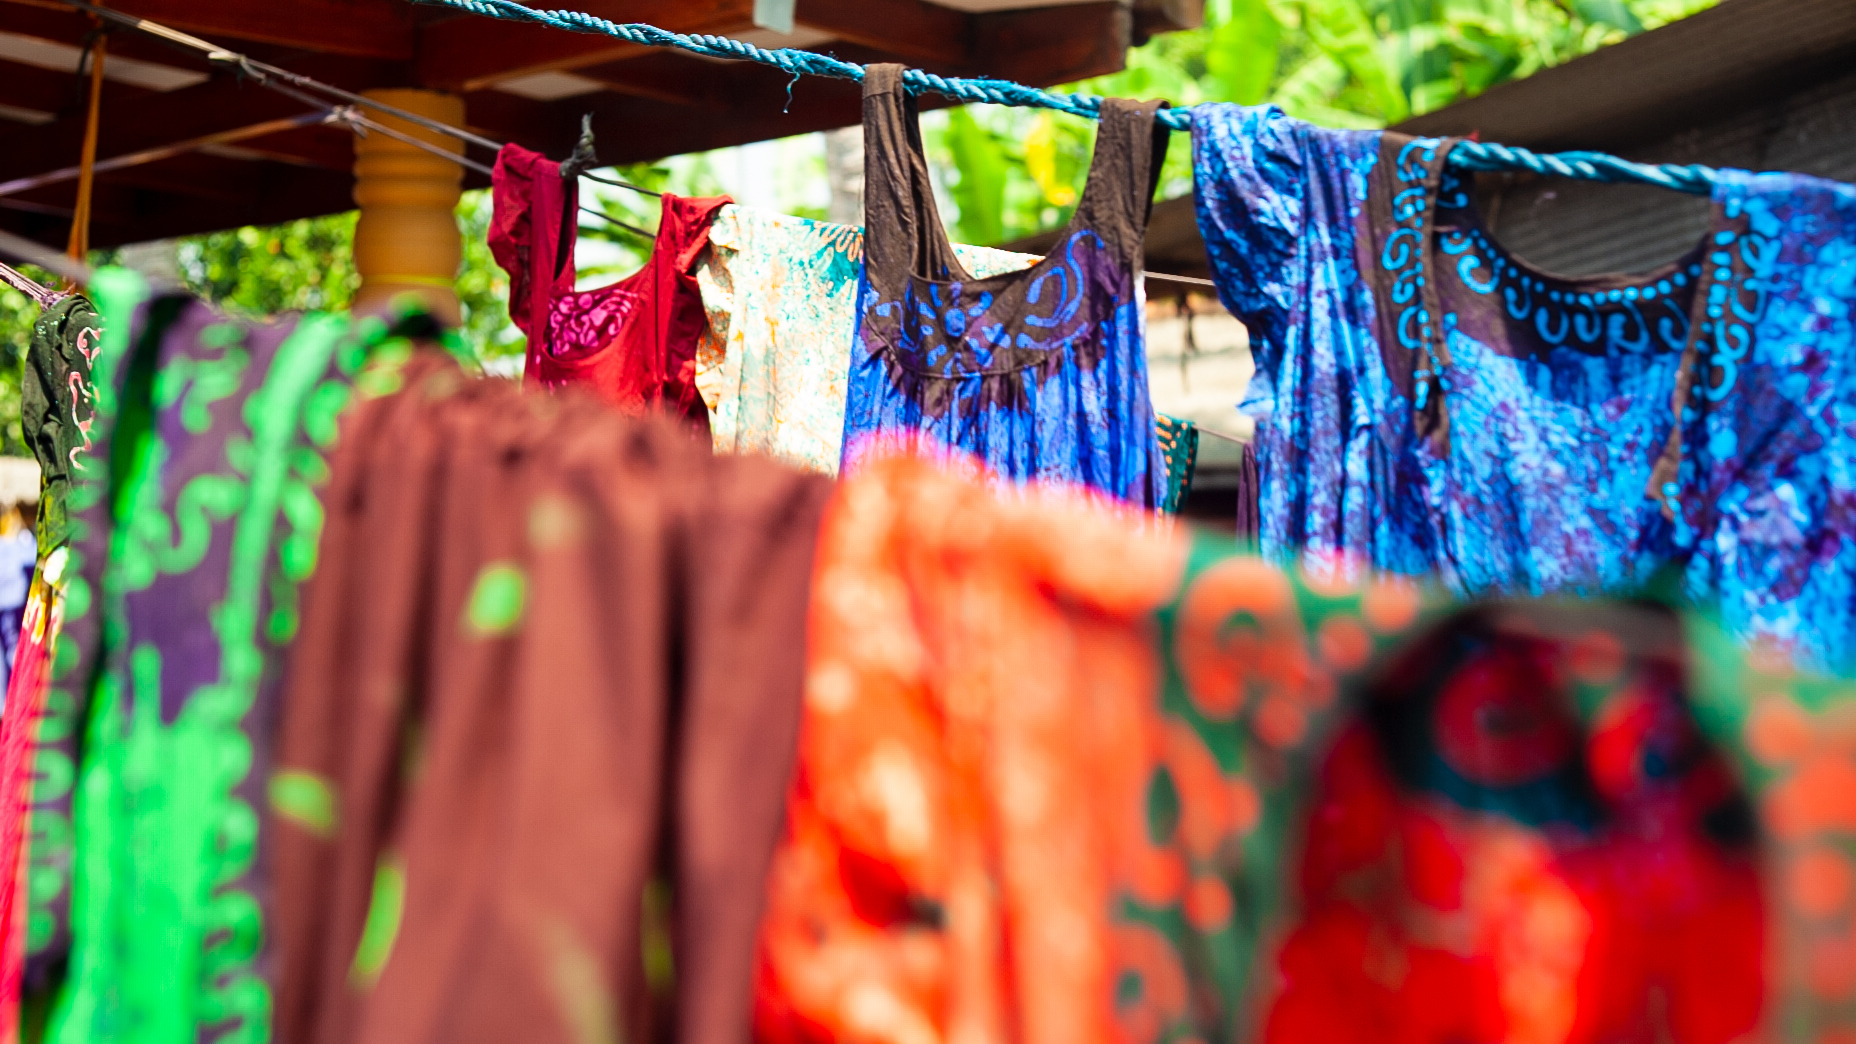 Local Batik design, hanging out to dry.